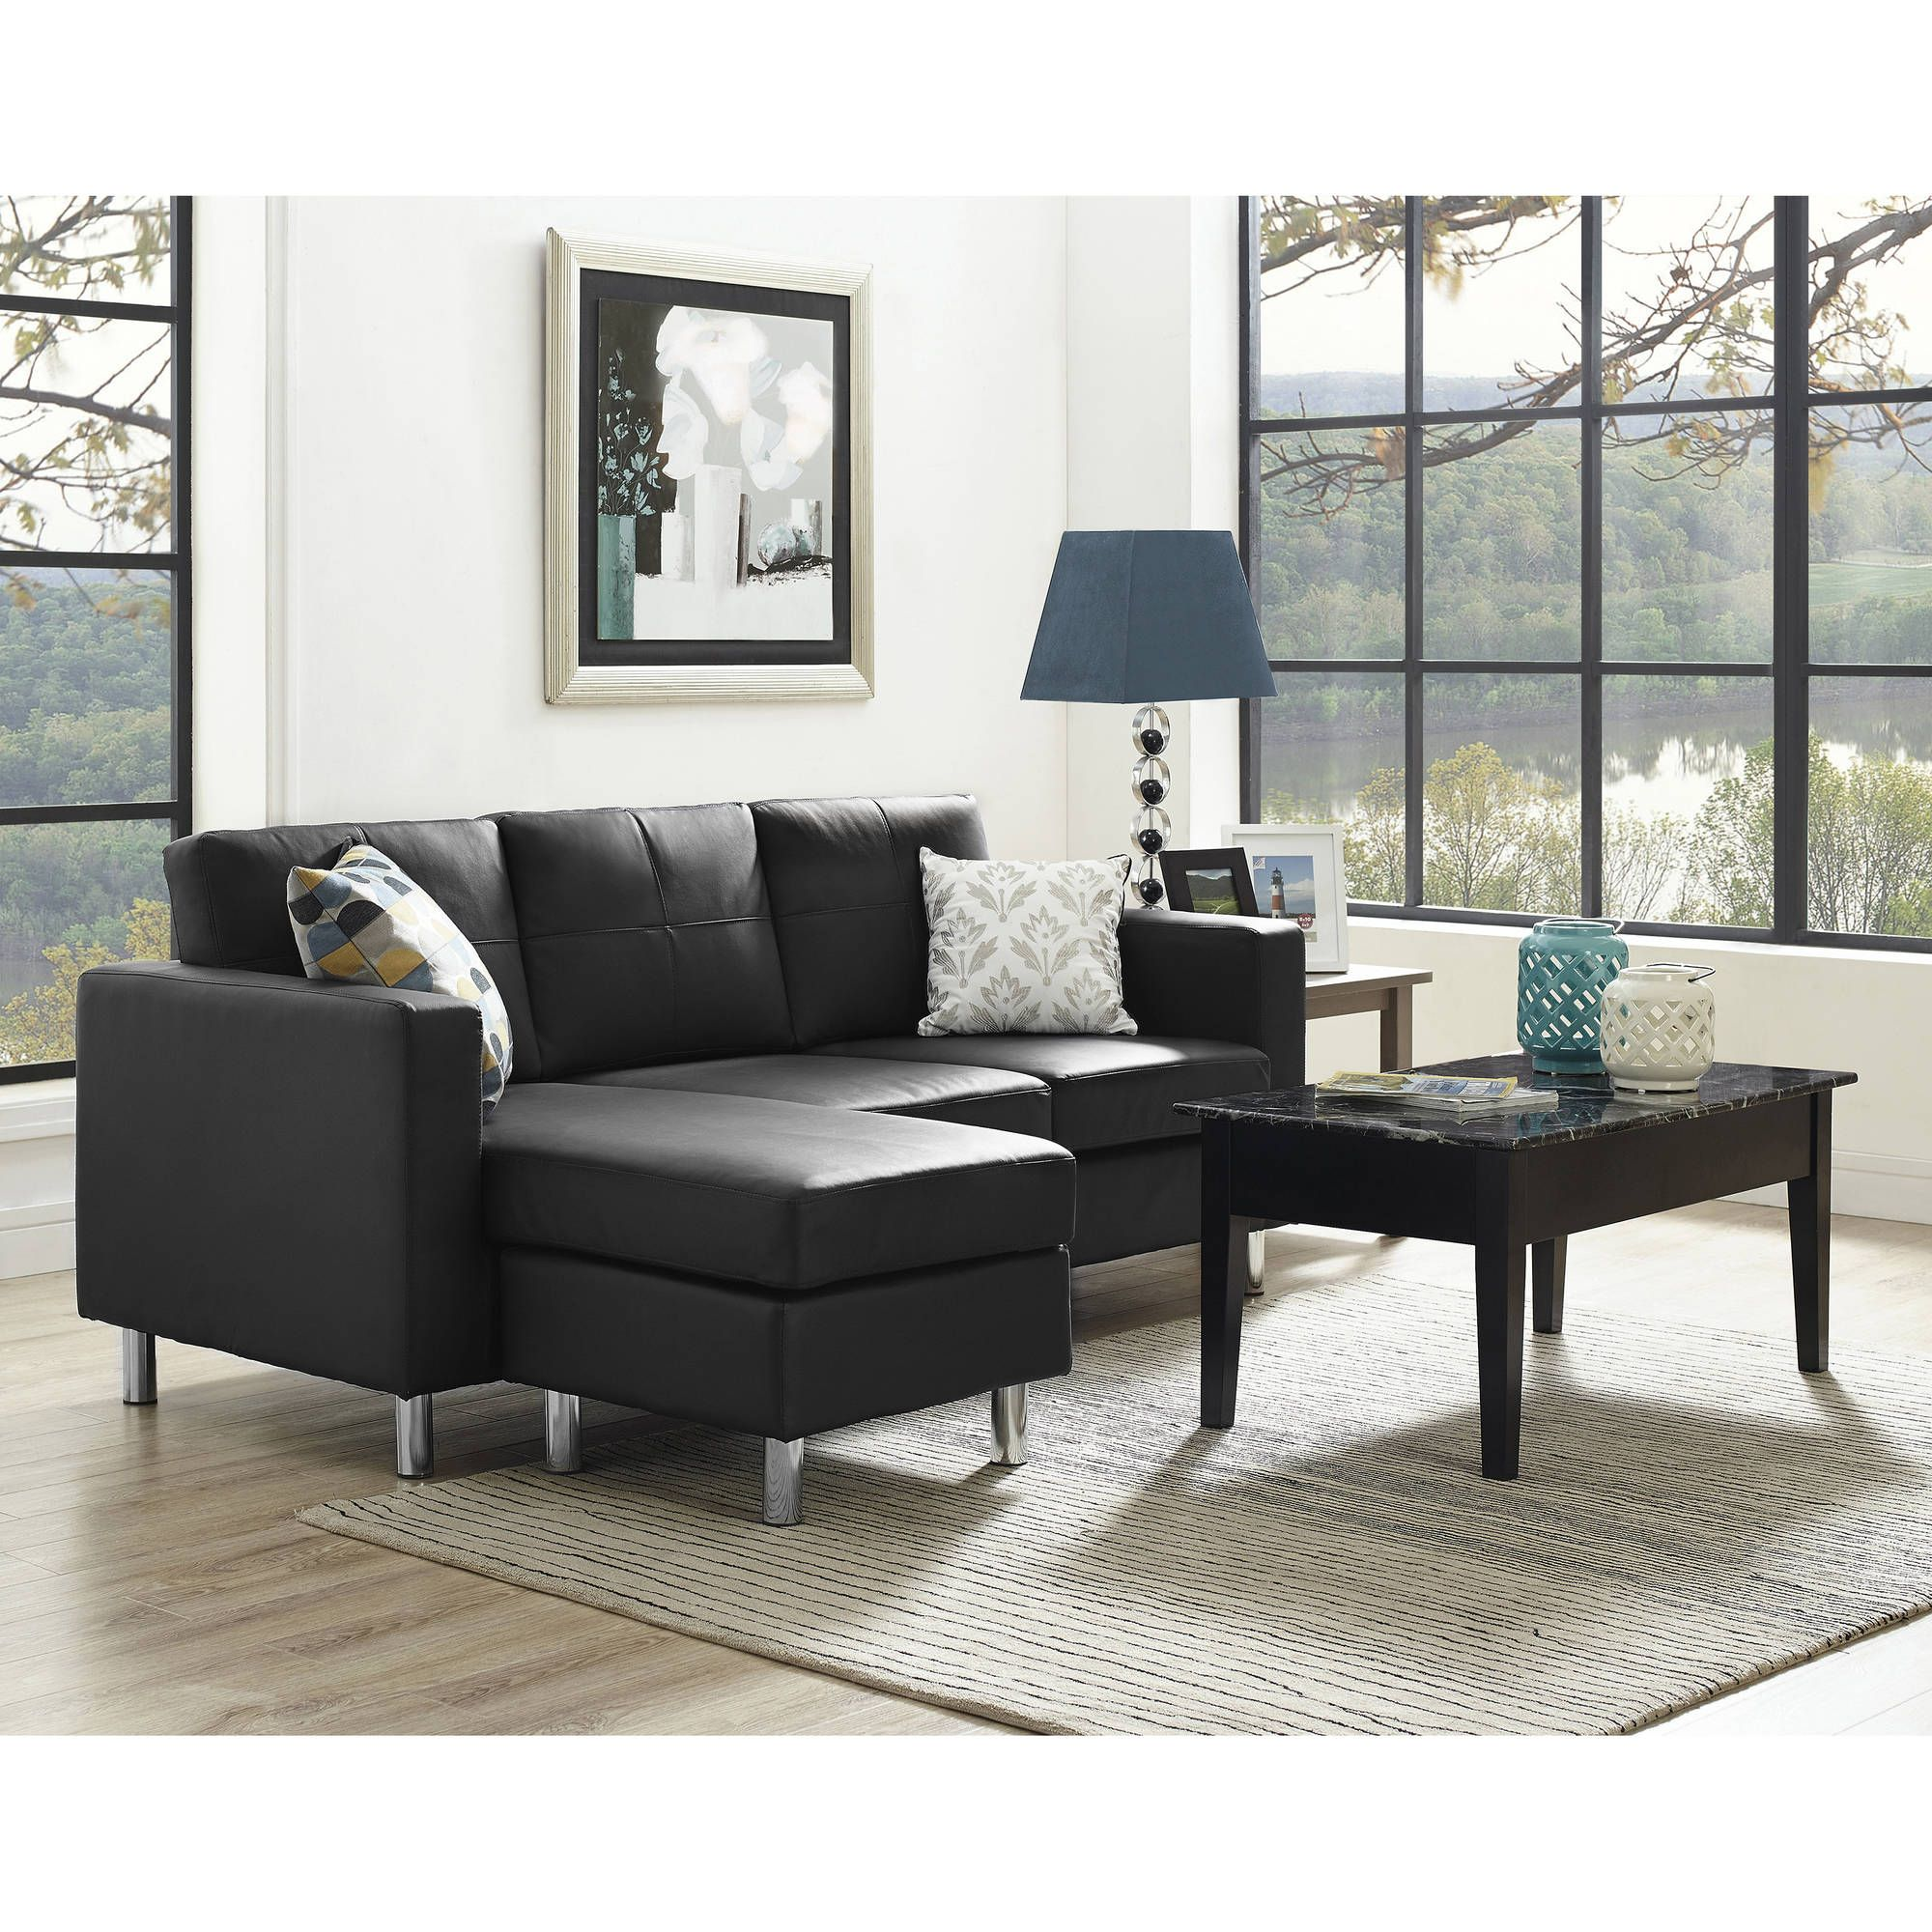 Uncategorized Sofa Small Space dorel living small spaces configurable sectional sofa multiple colors walmart com